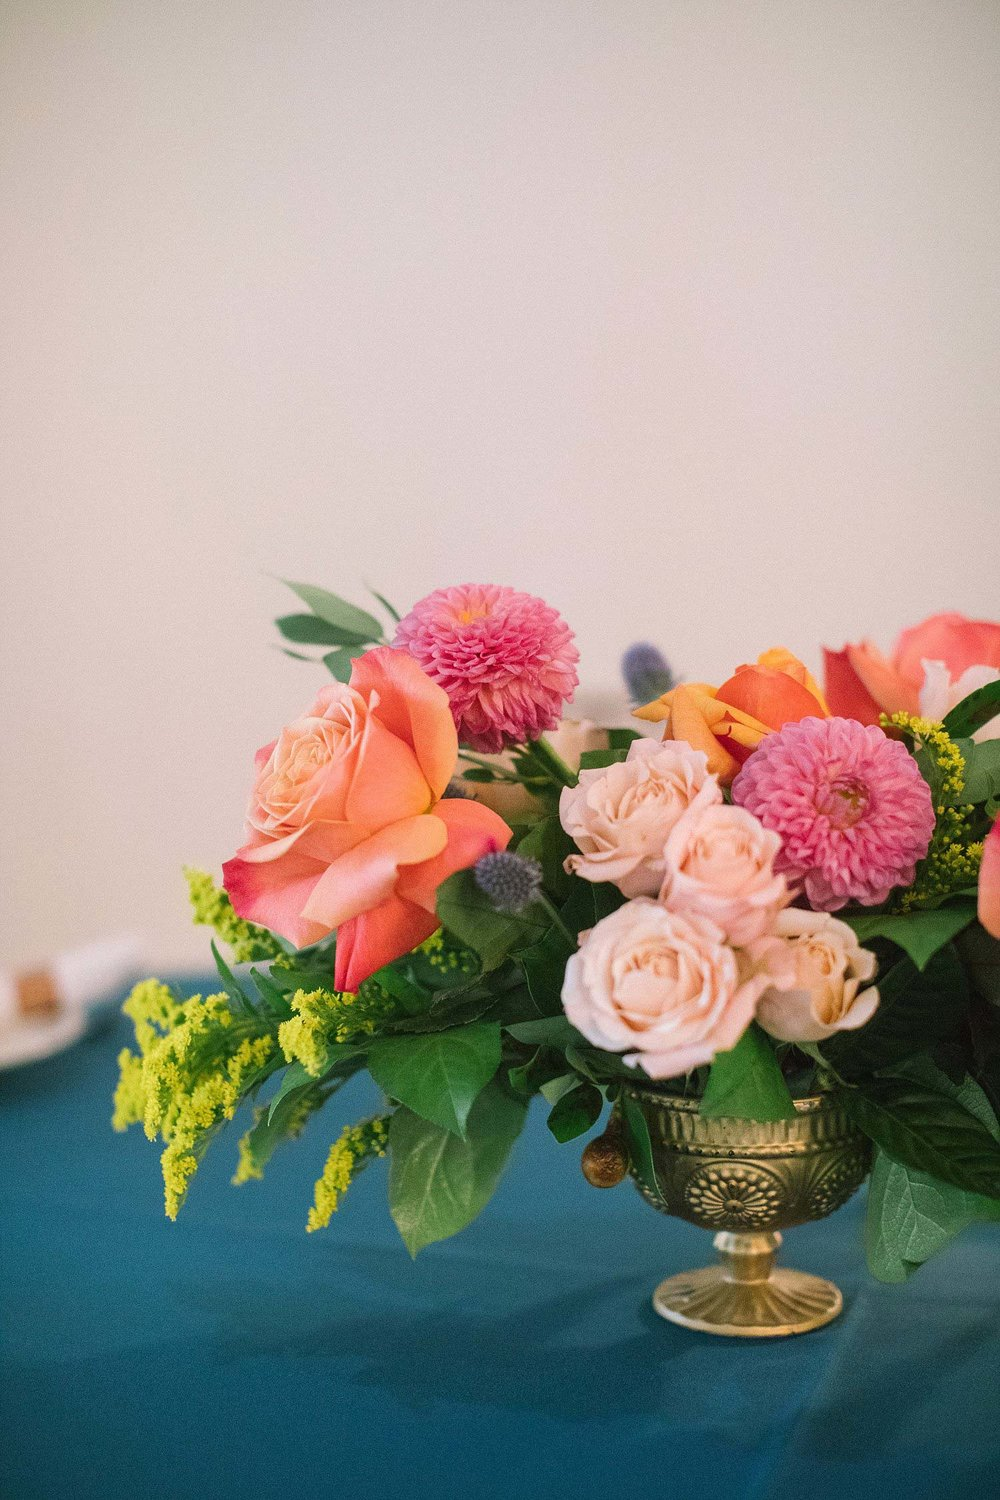 coral cream and apricot flowers with a blue tablecloth